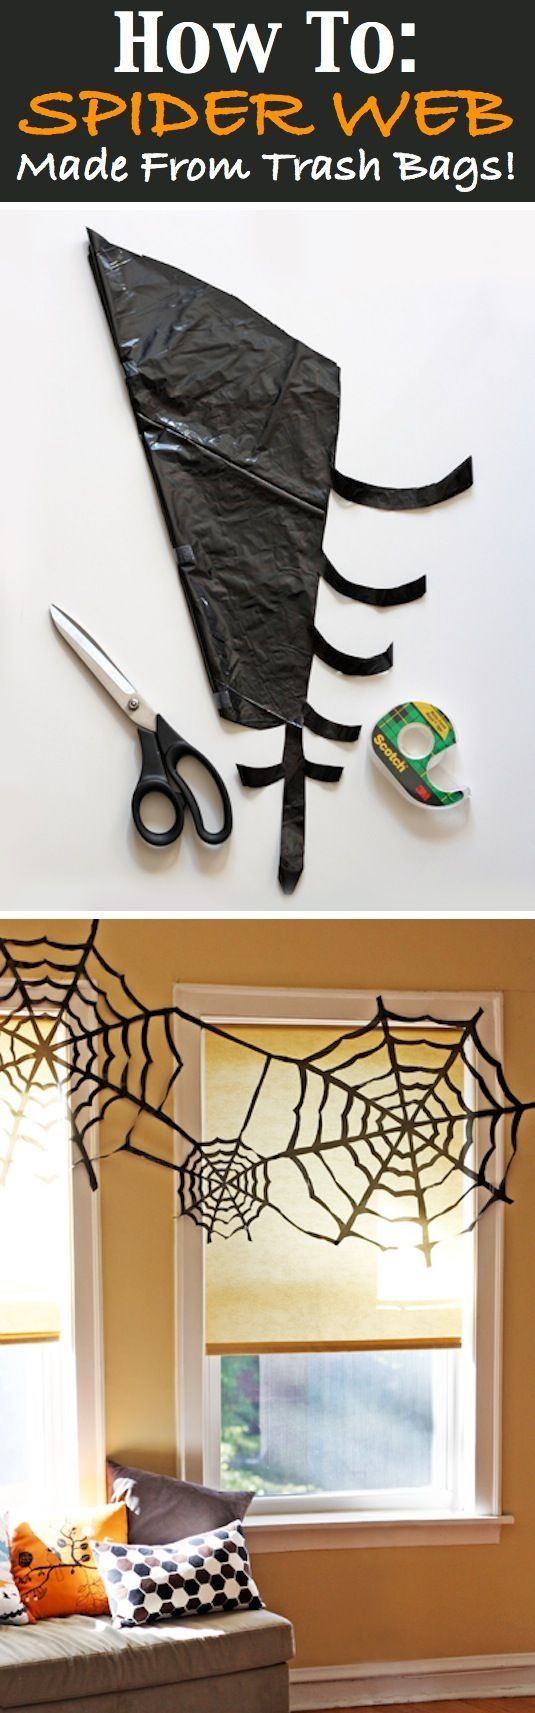 16 easy but awesome homemade halloween decorations by echkbet - Cheap Halloween Decor